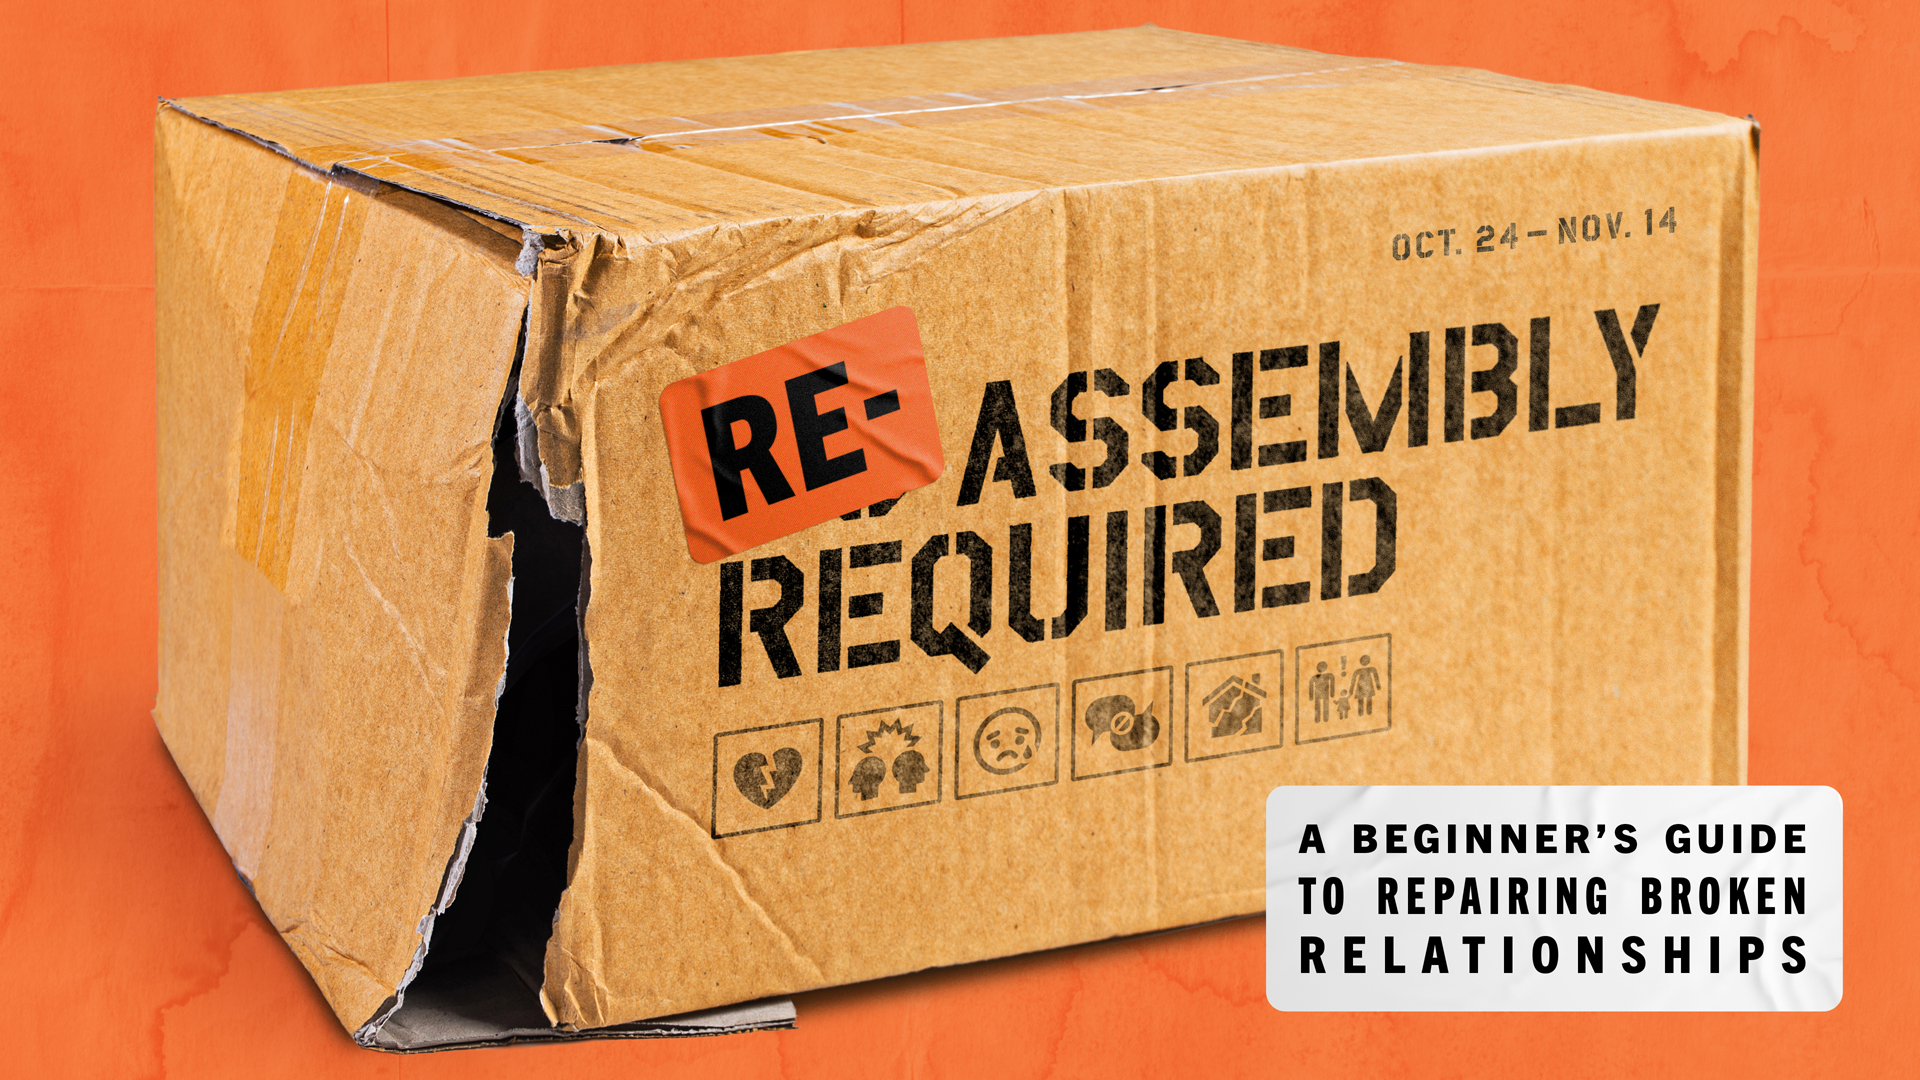 Re-Assembly Required